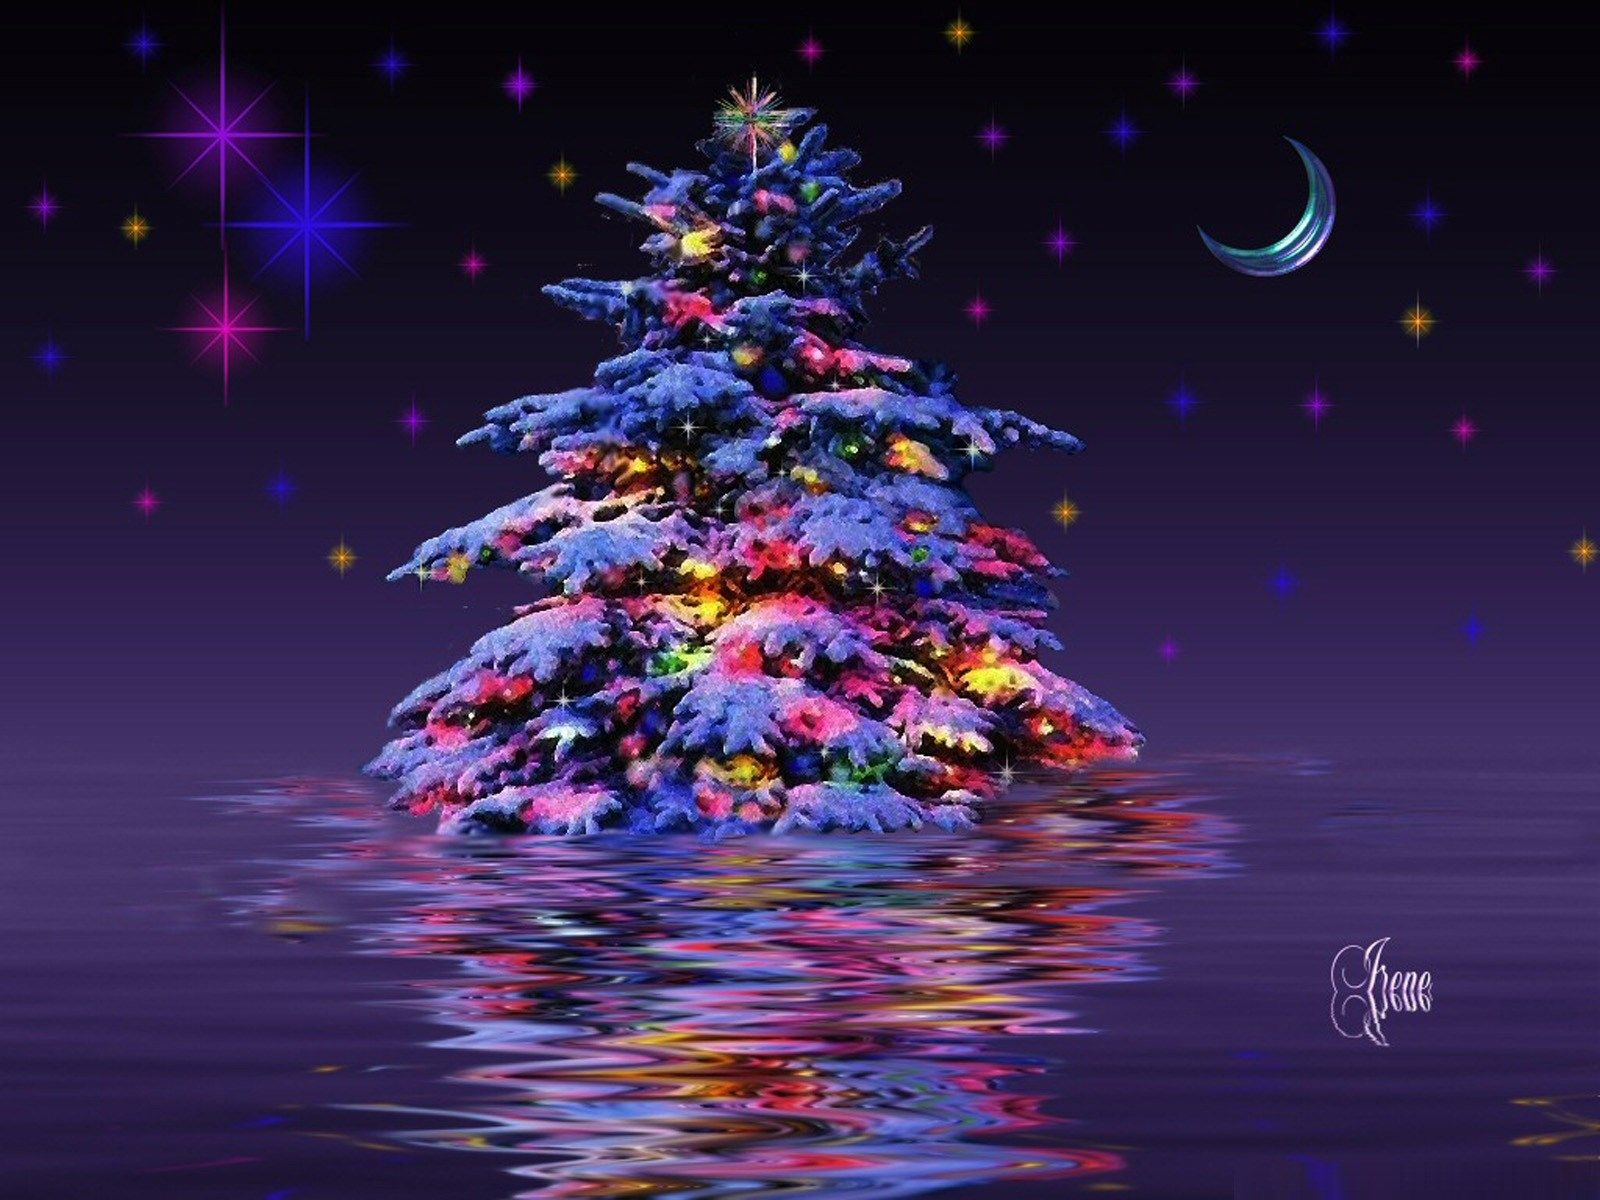 xmas pictures hd | sharovarka | Pinterest | Xmas pictures and Xmas